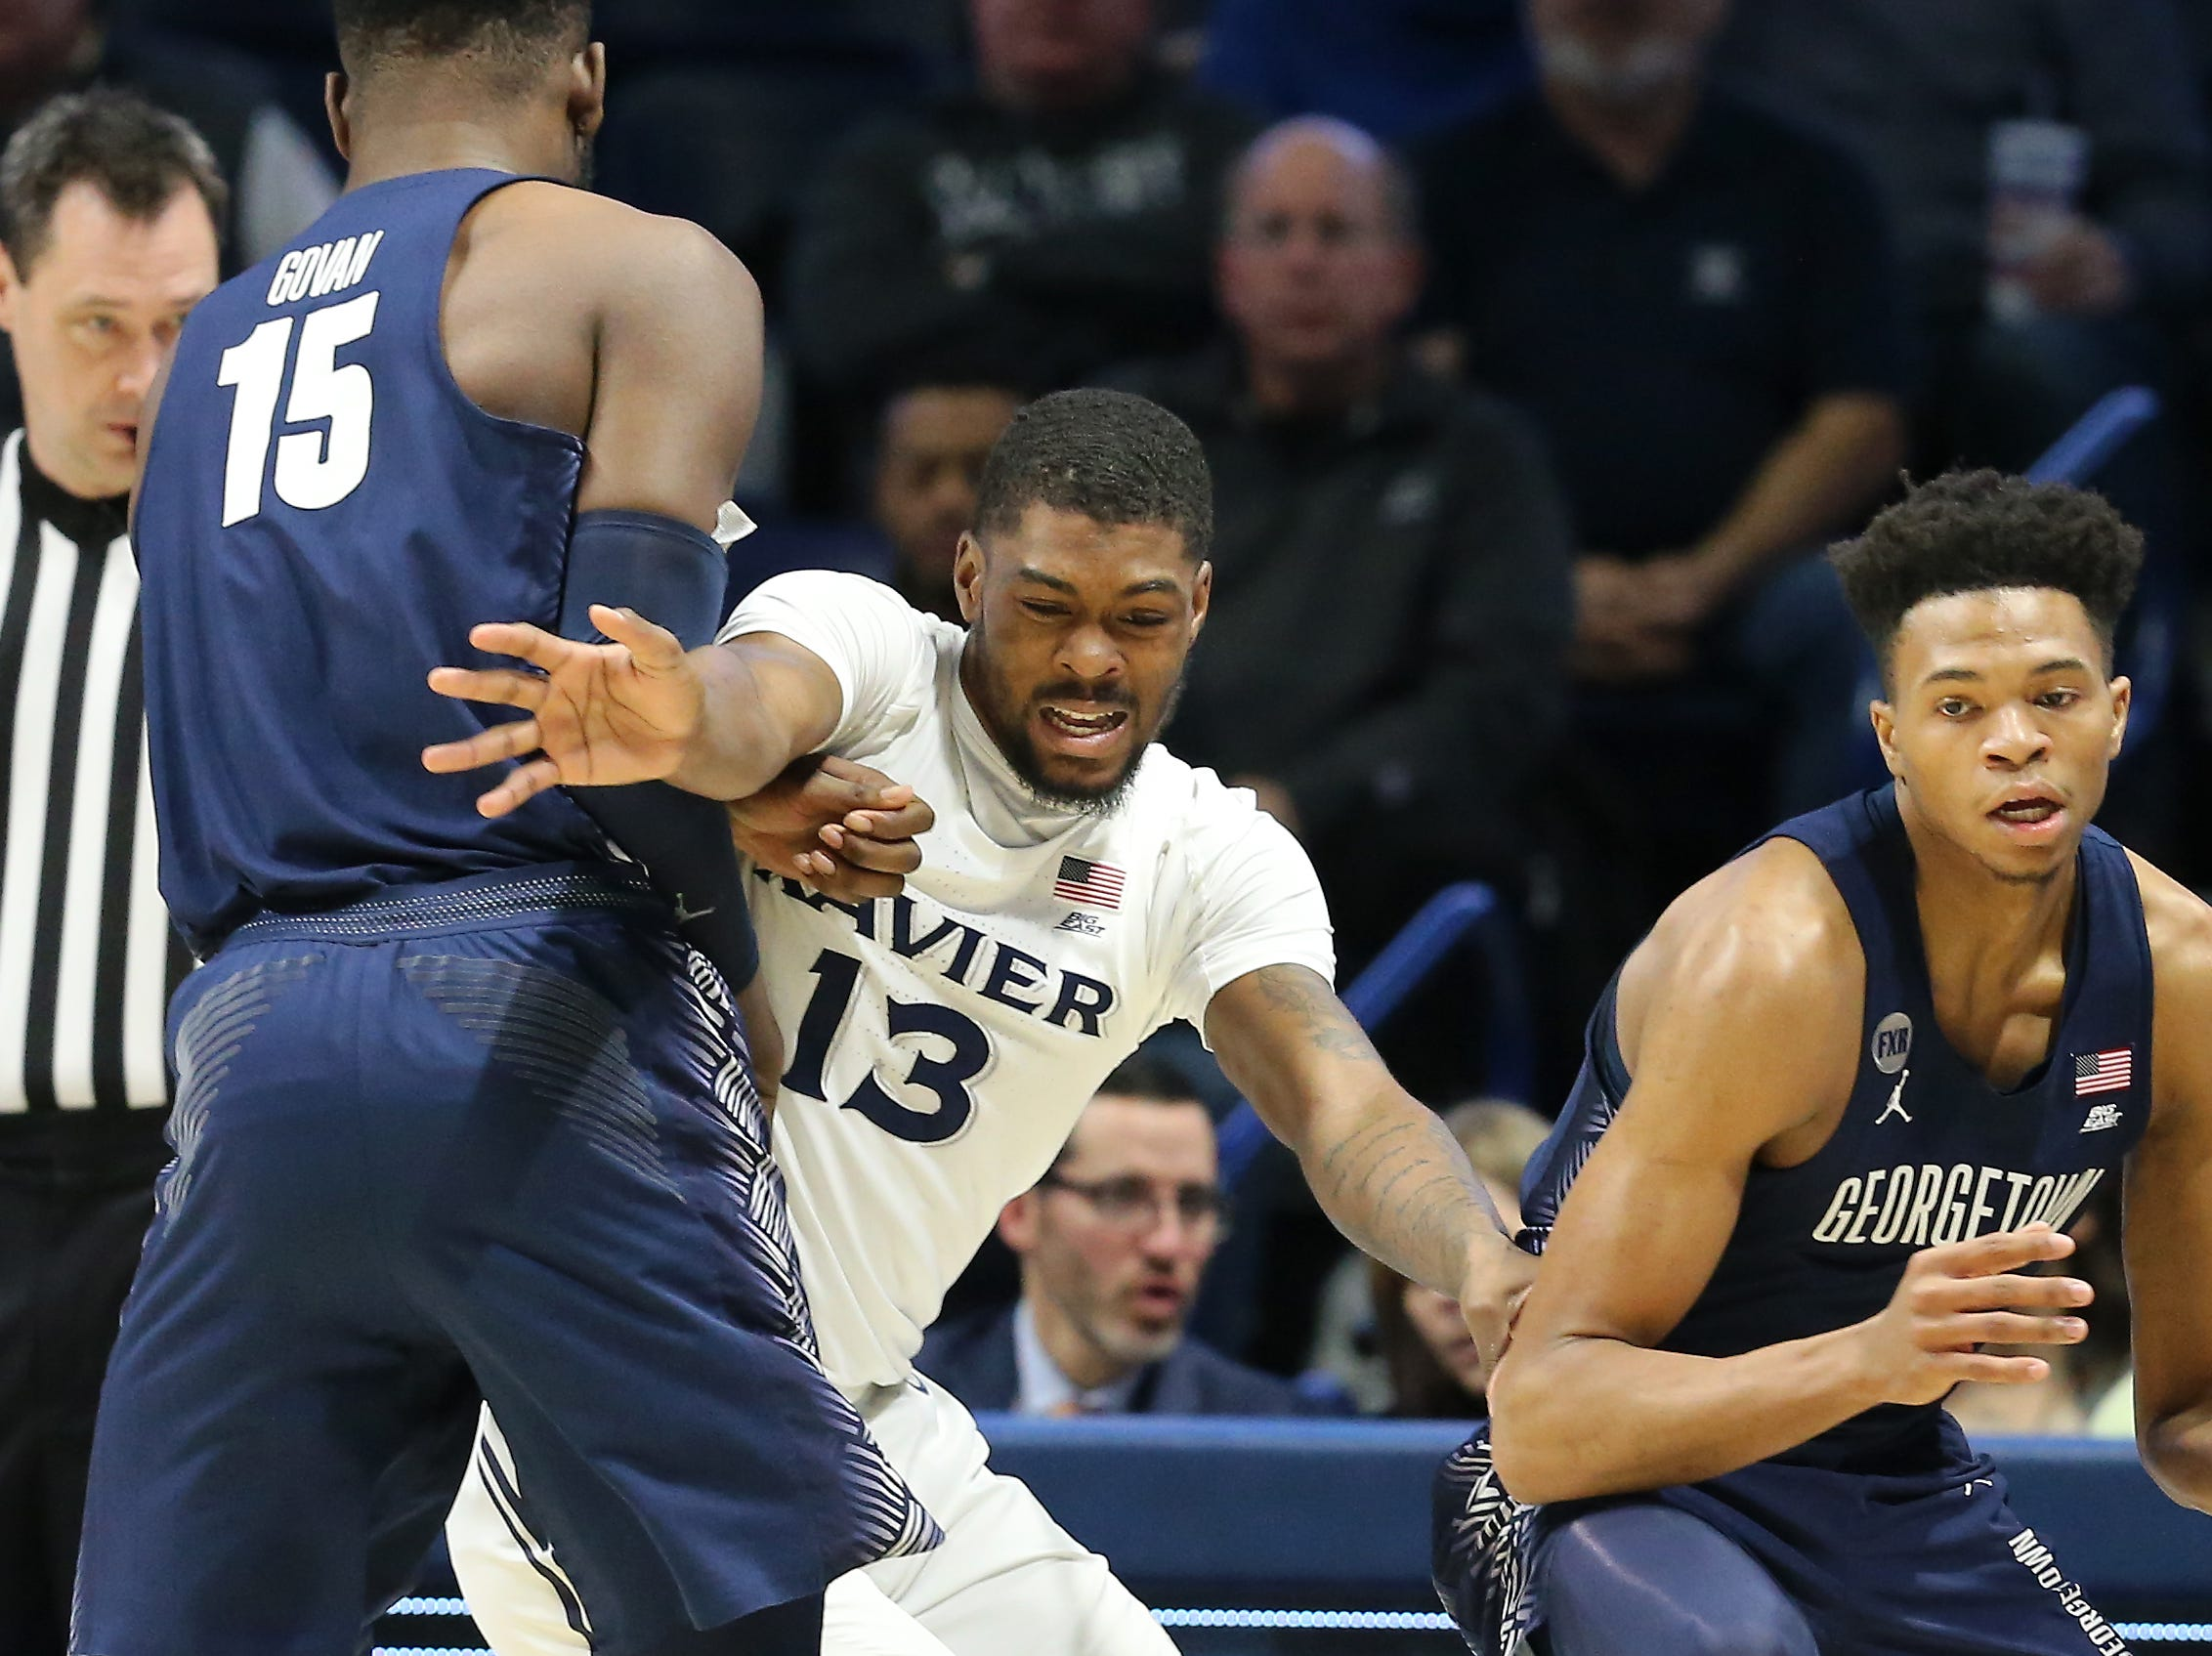 Xavier Musketeers forward Naji Marshall (13) fights through a screen by Georgetown Hoyas center Jessie Govan (15) in the first half of an NCAA basketball game, Wednesday, Jan. 9, 2019, at the Cintas Center in Cincinnati.